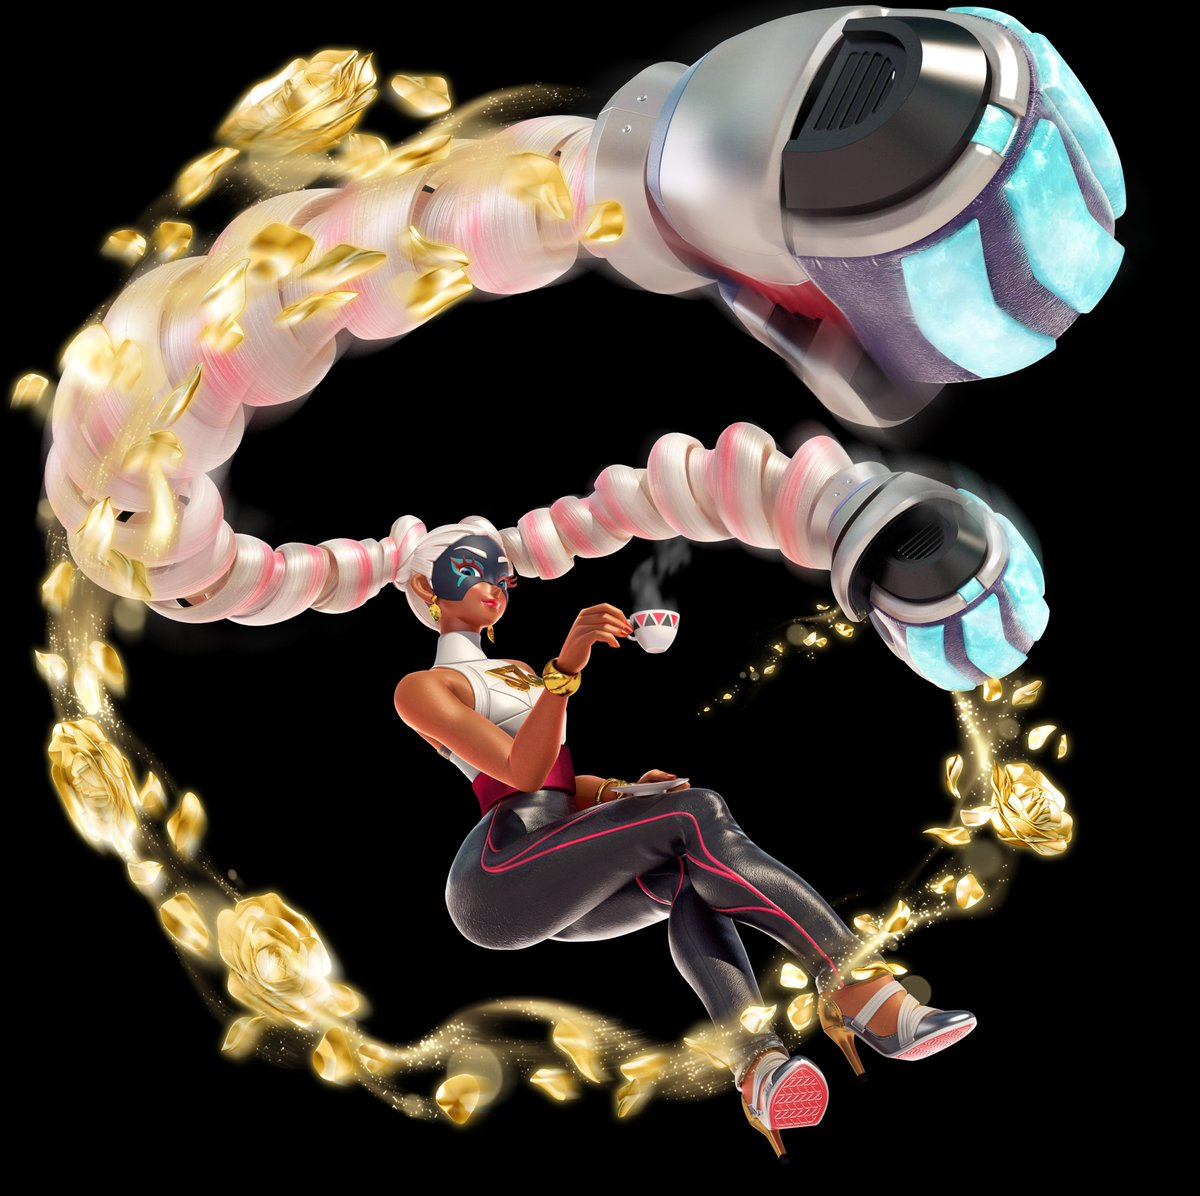 Image result for twintelle transparent